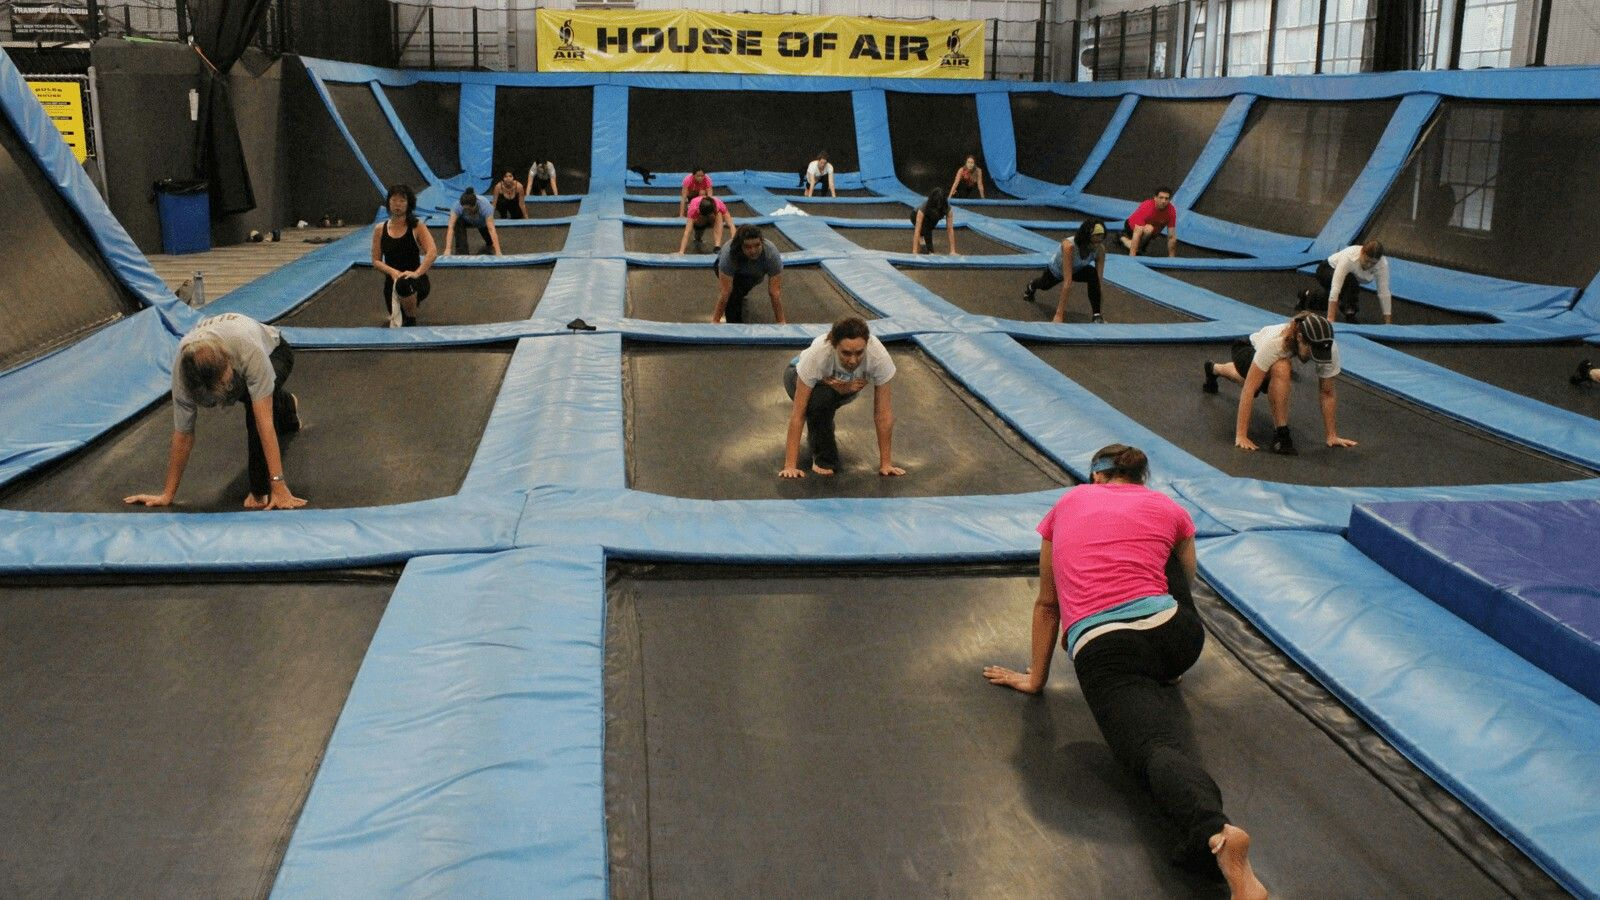 San Francisco House Of Air Trampoline Park Trampoline Park Trampoline Park Birthday Party Birthday Party At Park